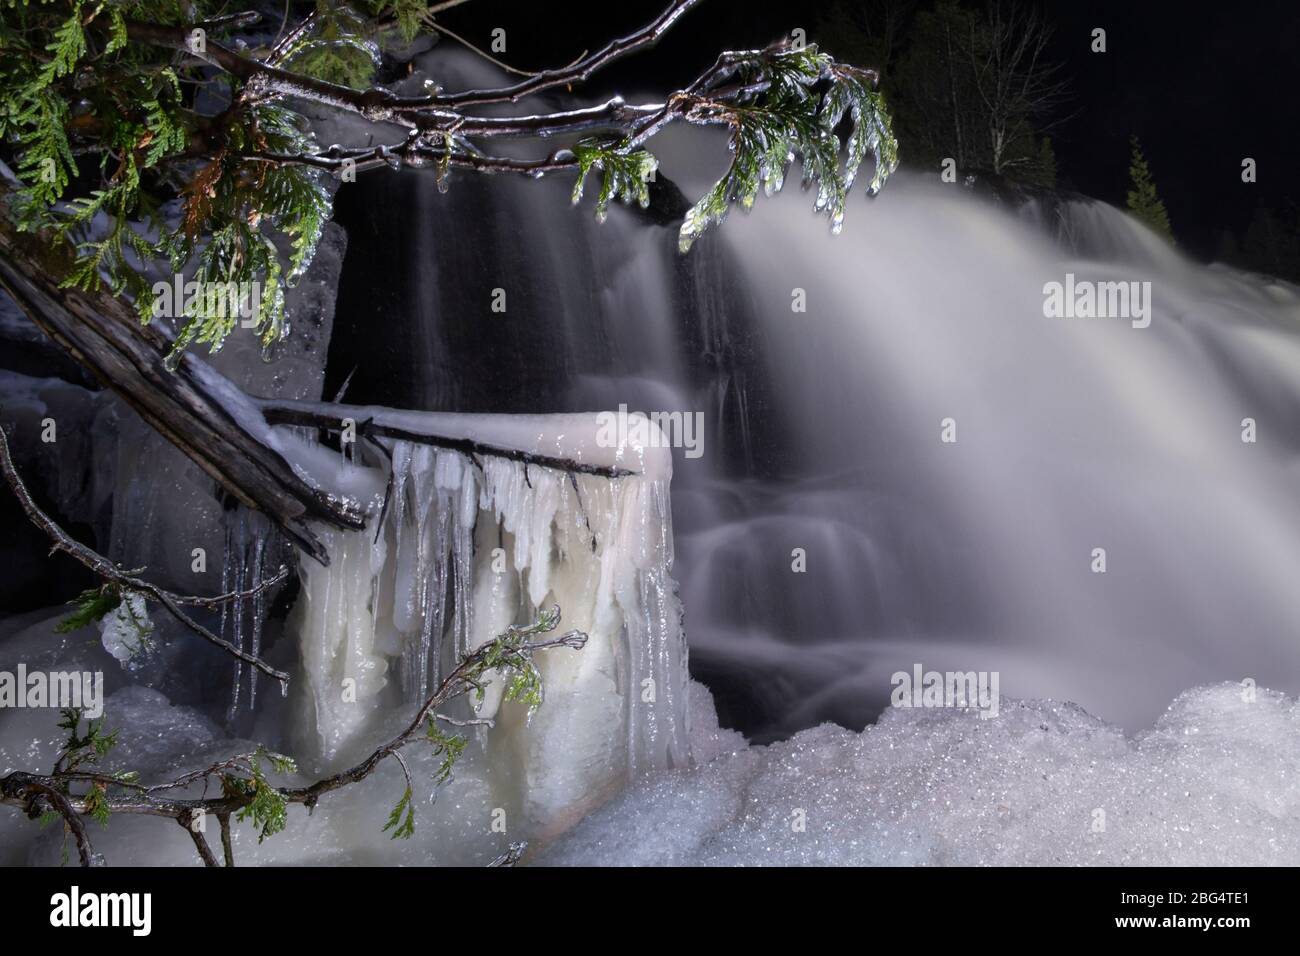 A frozen waterfall in kitch-iti-kipi state park in Michigan Stock Photo